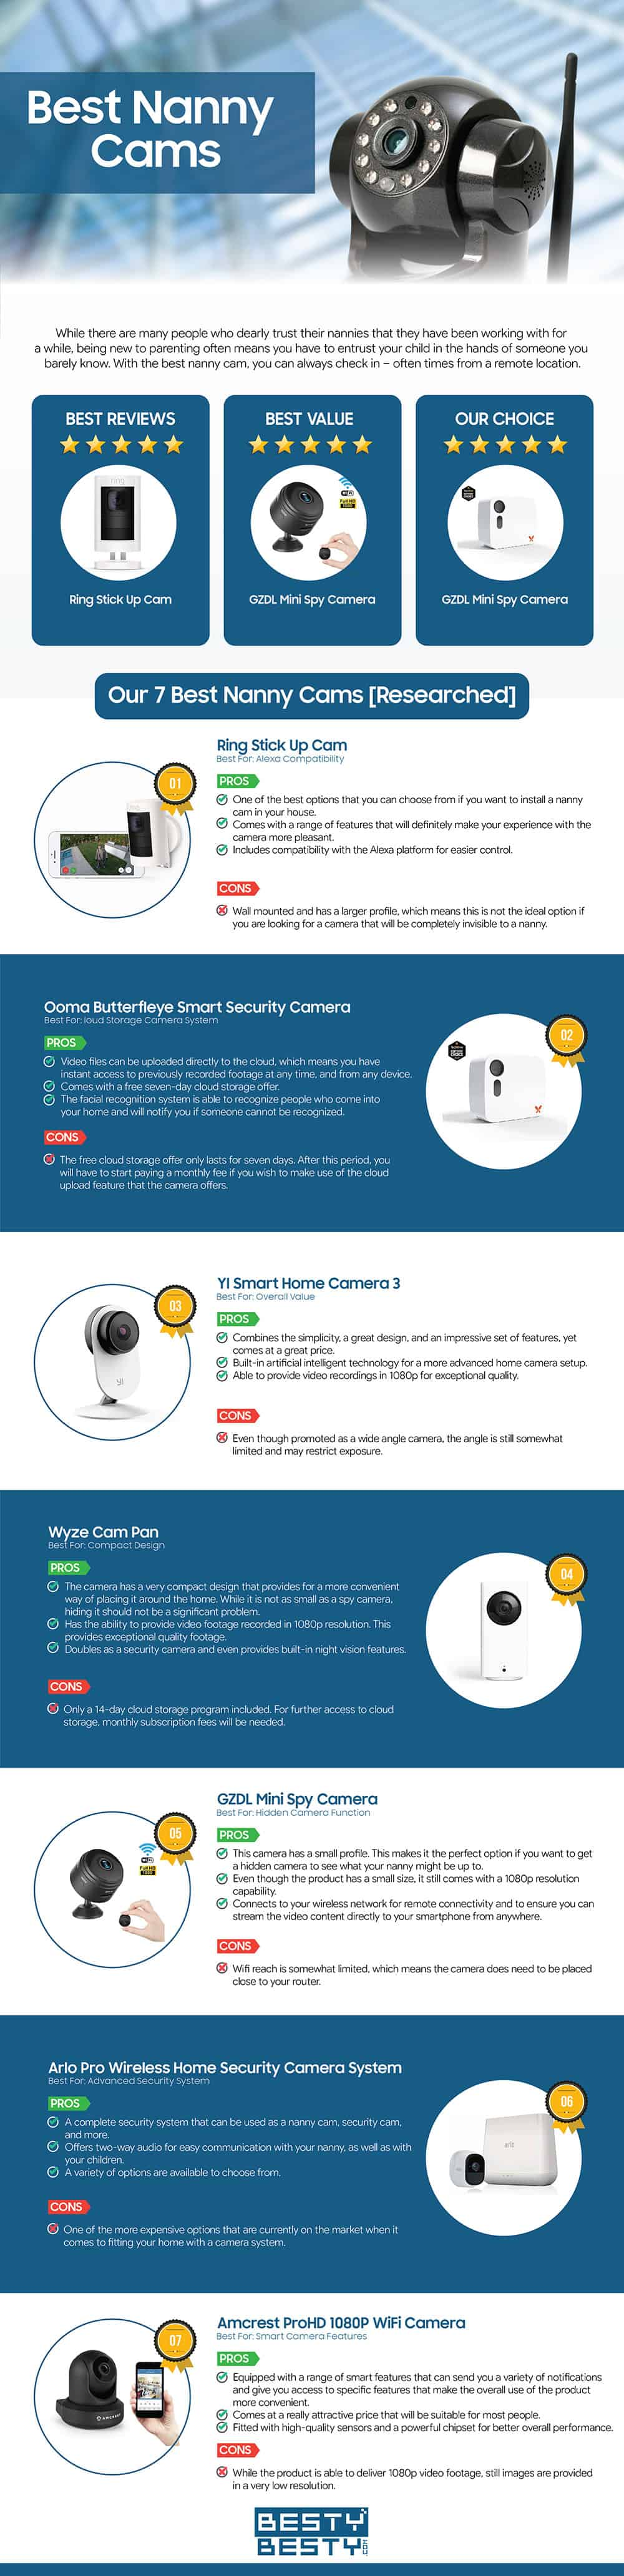 Top Nanny Cams infographic by bestybesty.com